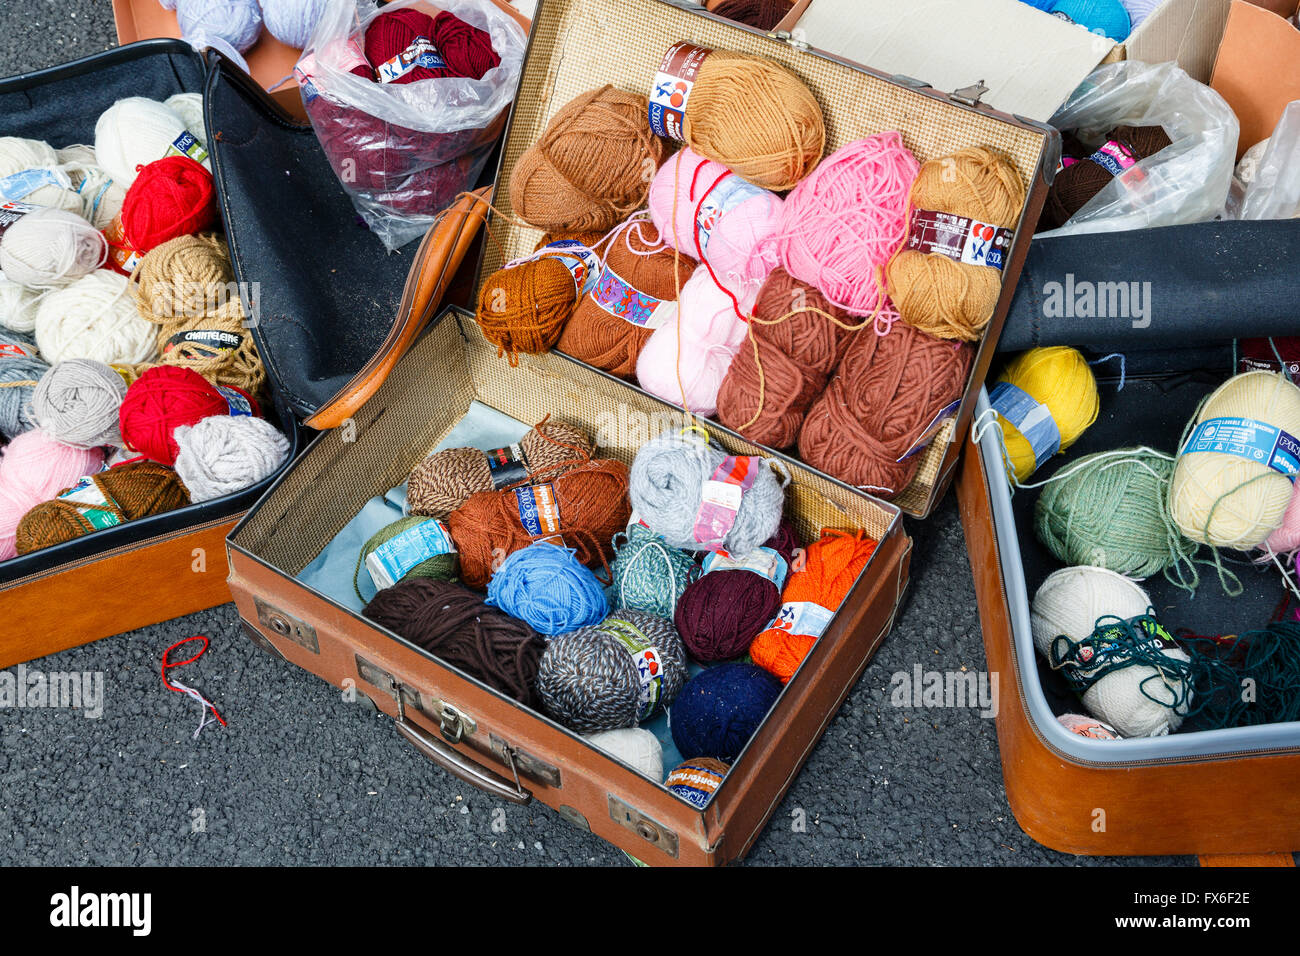 Balls of wool for sale at a vide-grenier in the village of Allègre, Haute-Loire, France - Stock Image